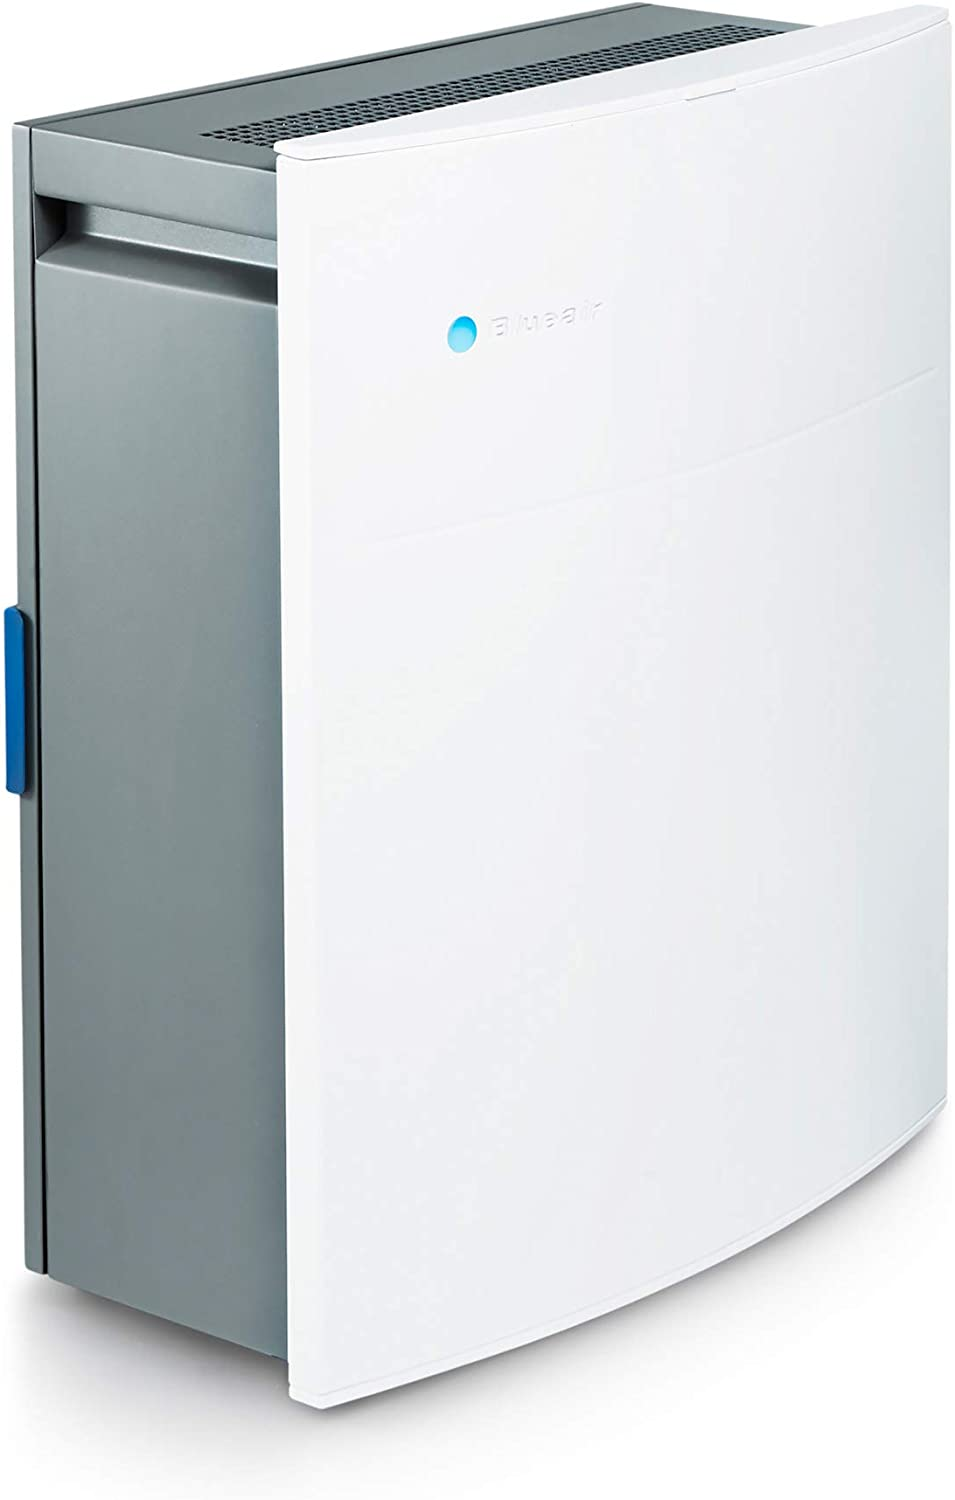 Blueair Classic 205 Air Purifier for home with HEPASilent Filtration for Allergies, Pets, Viruses, Dust, Asthma, Odors and Smoke, WiFi Enabled, ALEXA compatible- Small to Medium rooms